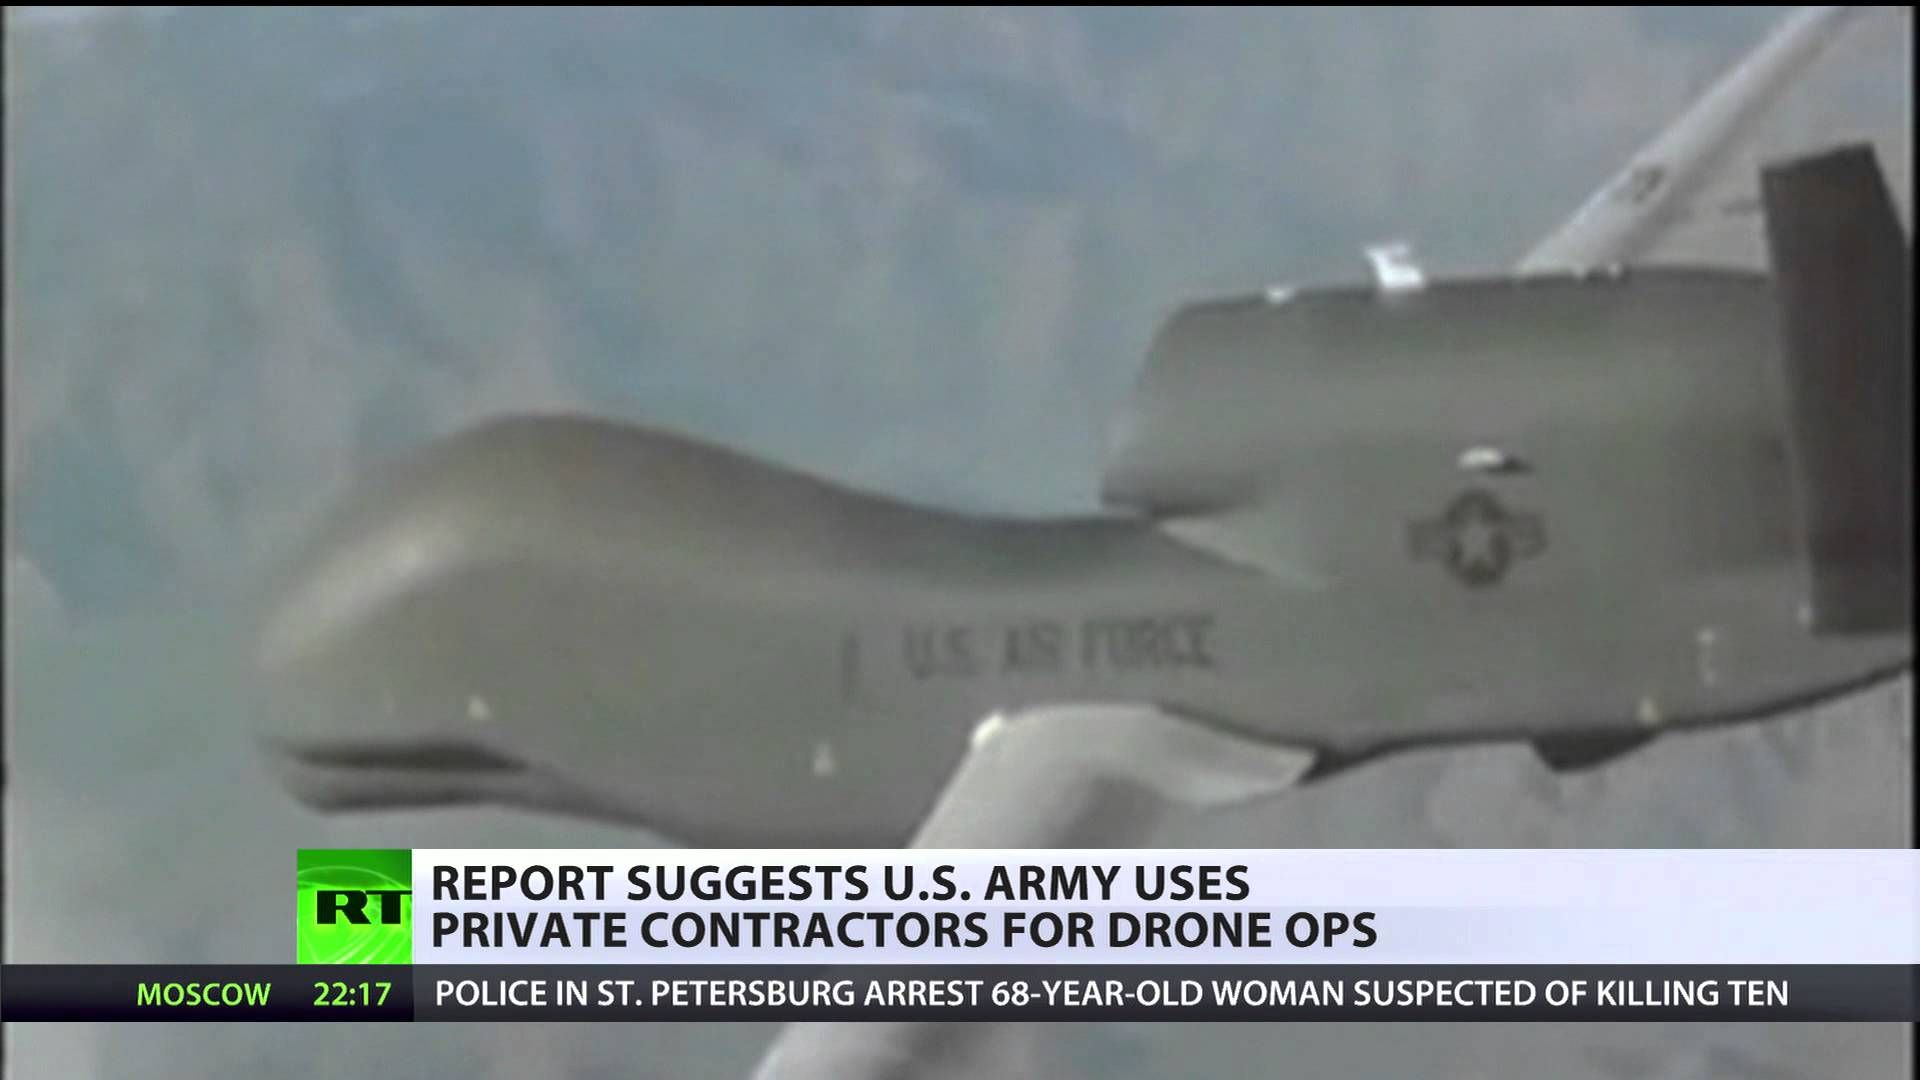 Lowest Bidder: Private military contractors at heart of drone program